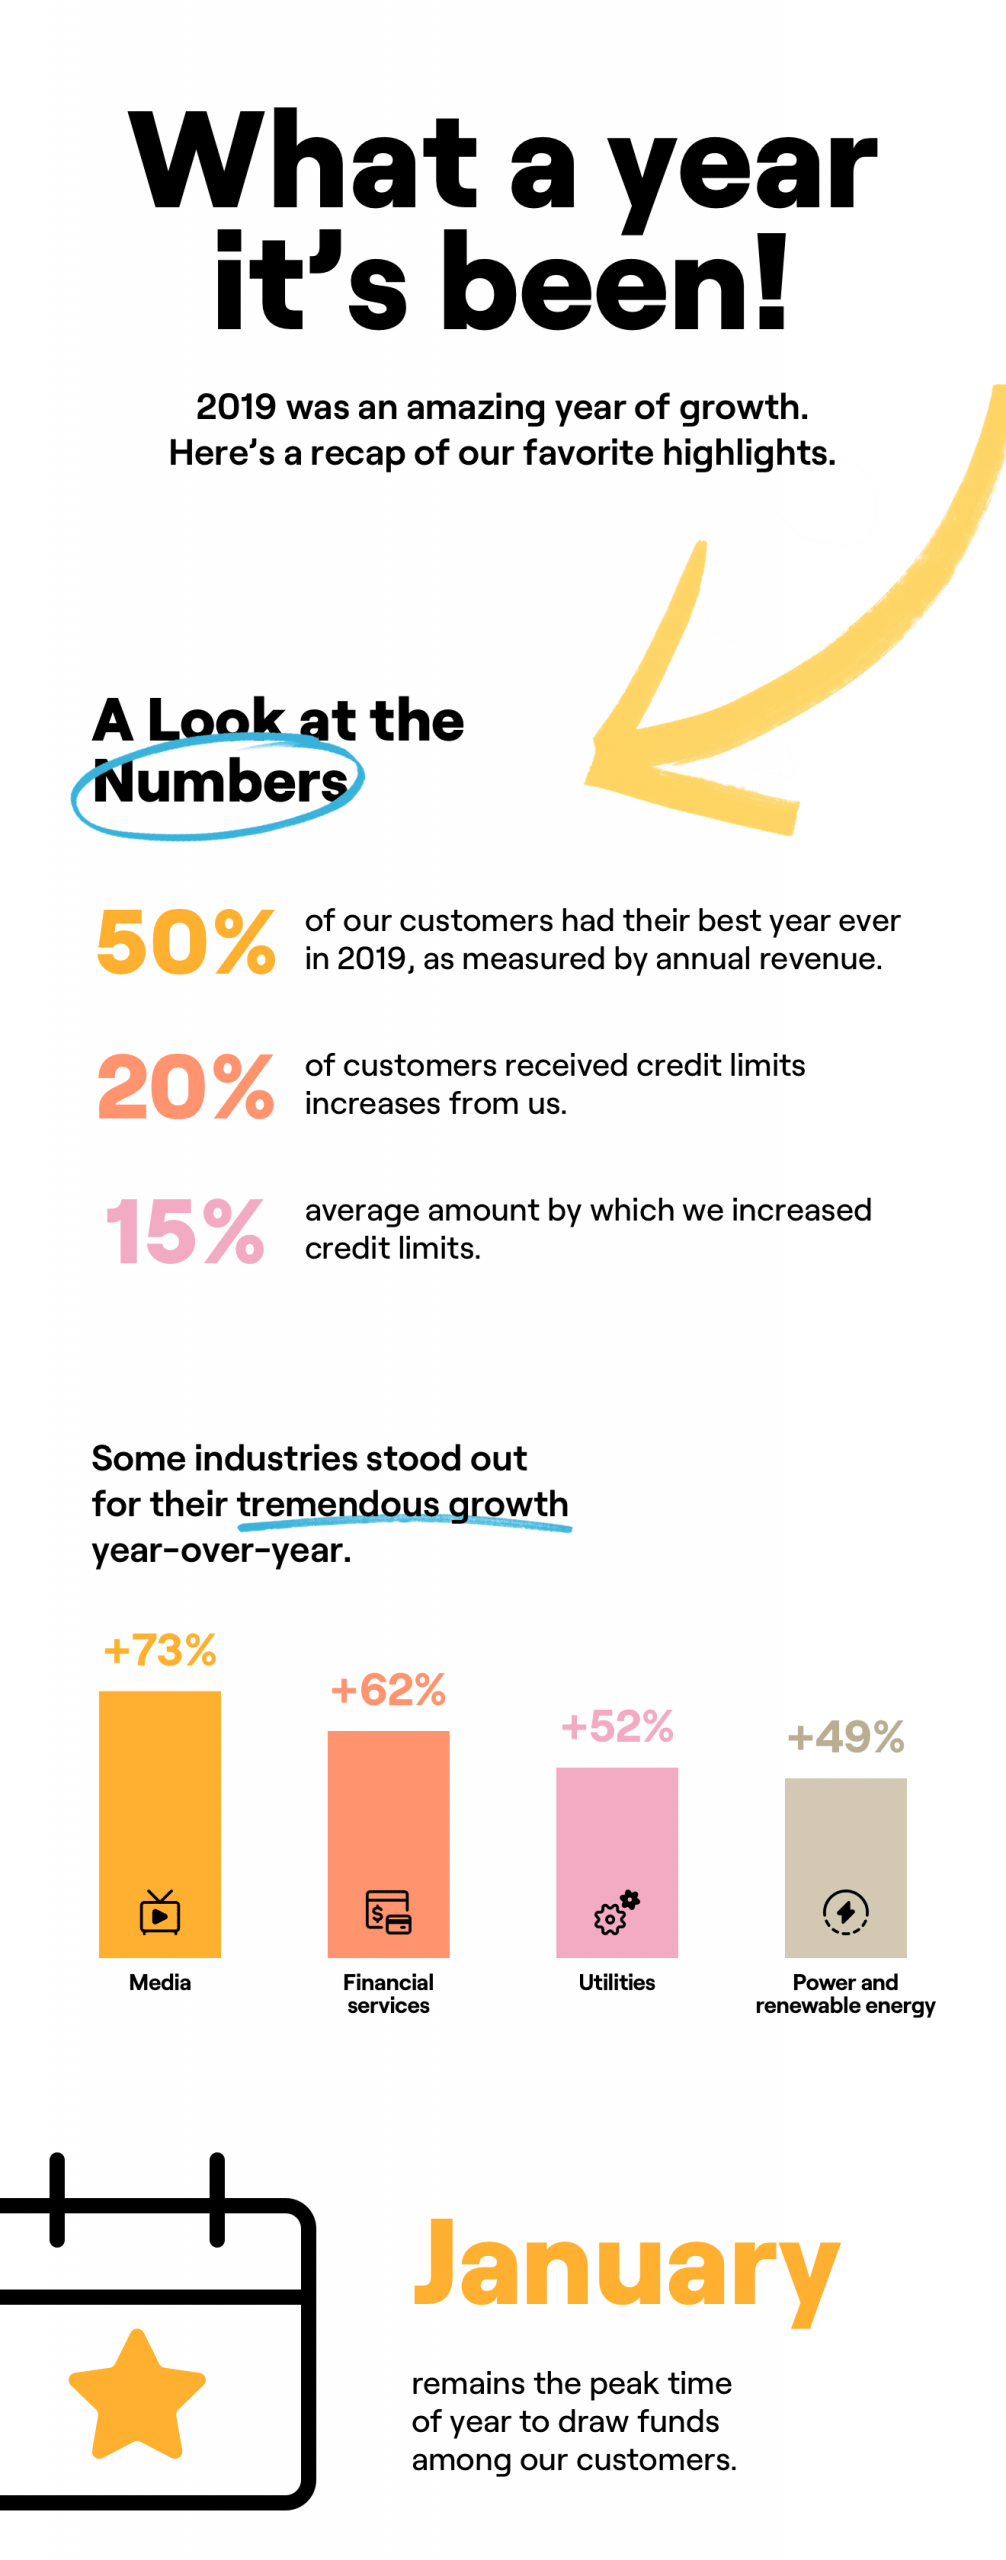 50% of Fundbox customers said 2019 was their best year, especially media companies. January was the peak month to draw funds.